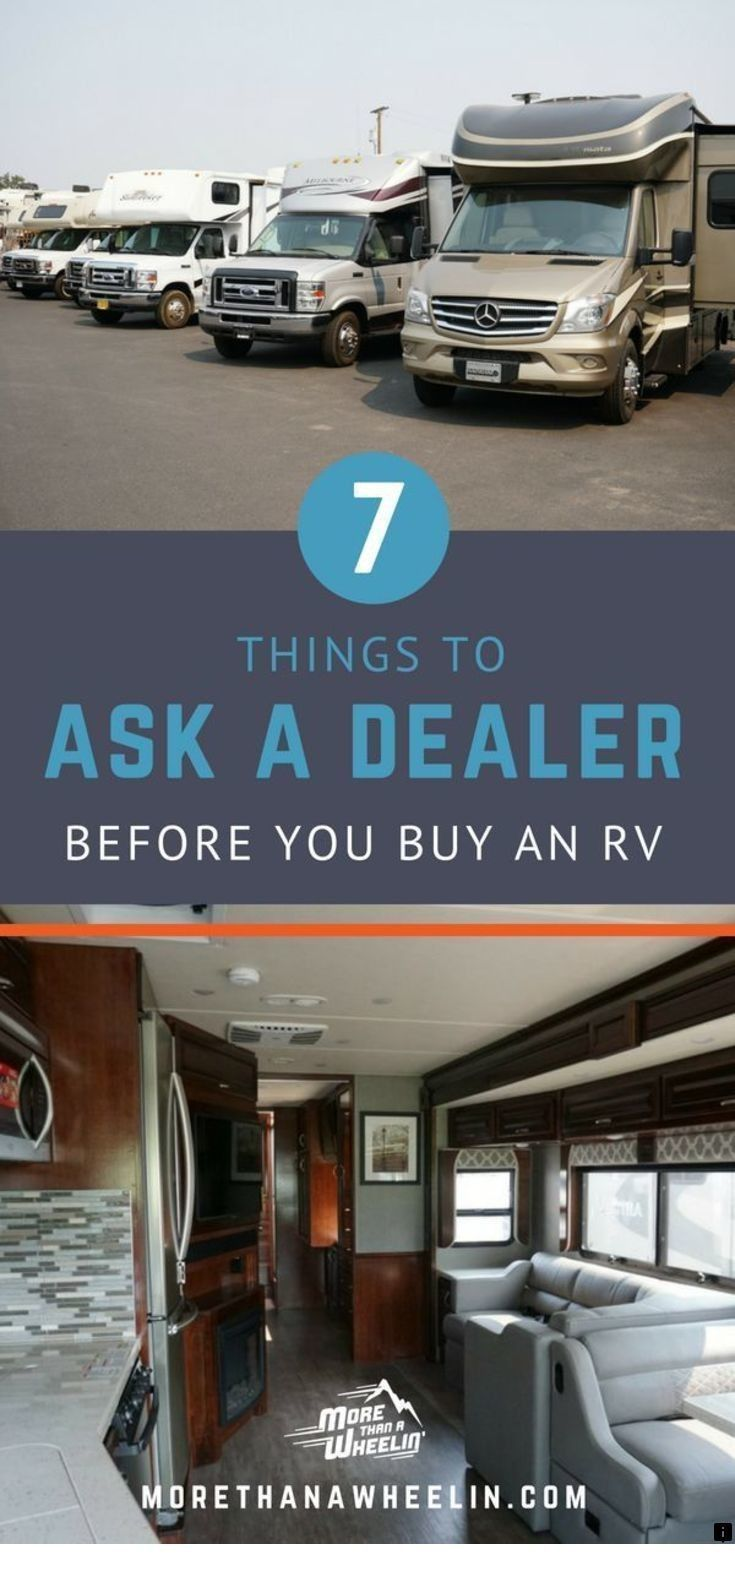 Check this website resource find out about rv dealers